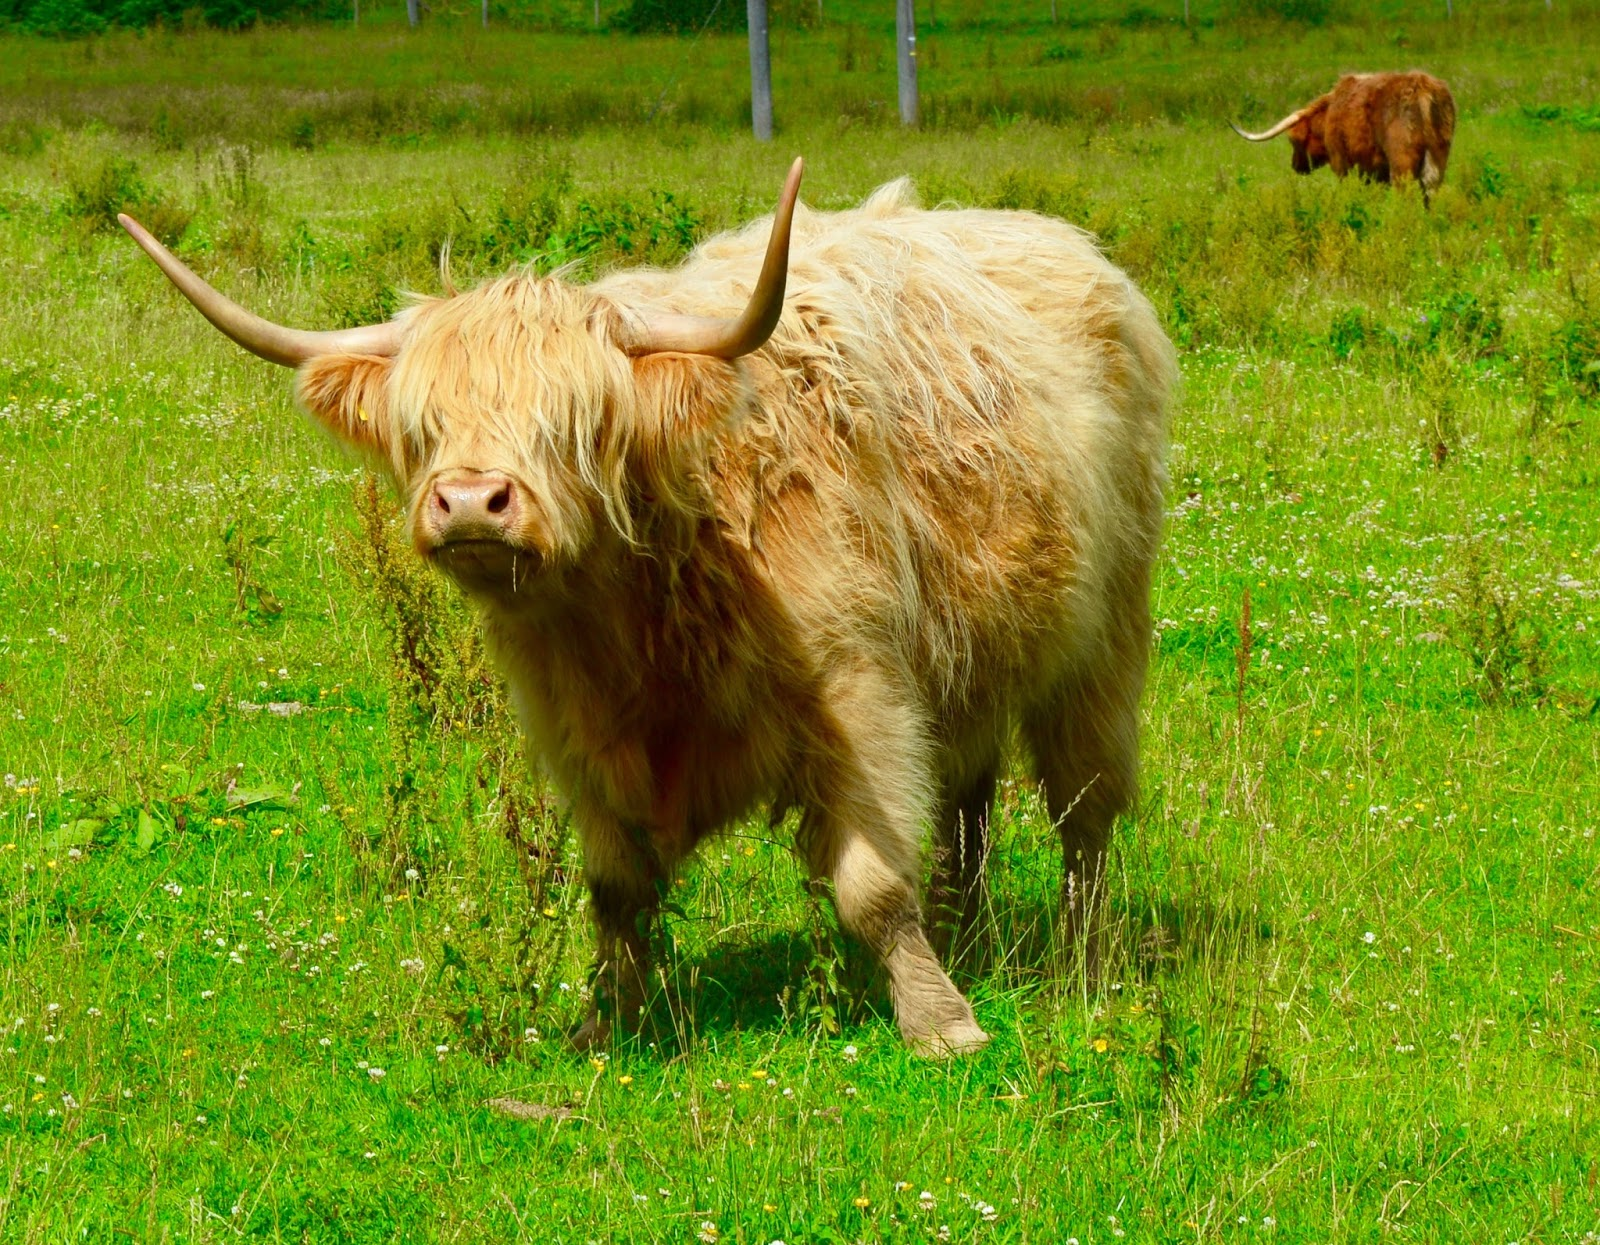 Is it Time to Emigrate? - moving to Scotland. Highland Cow